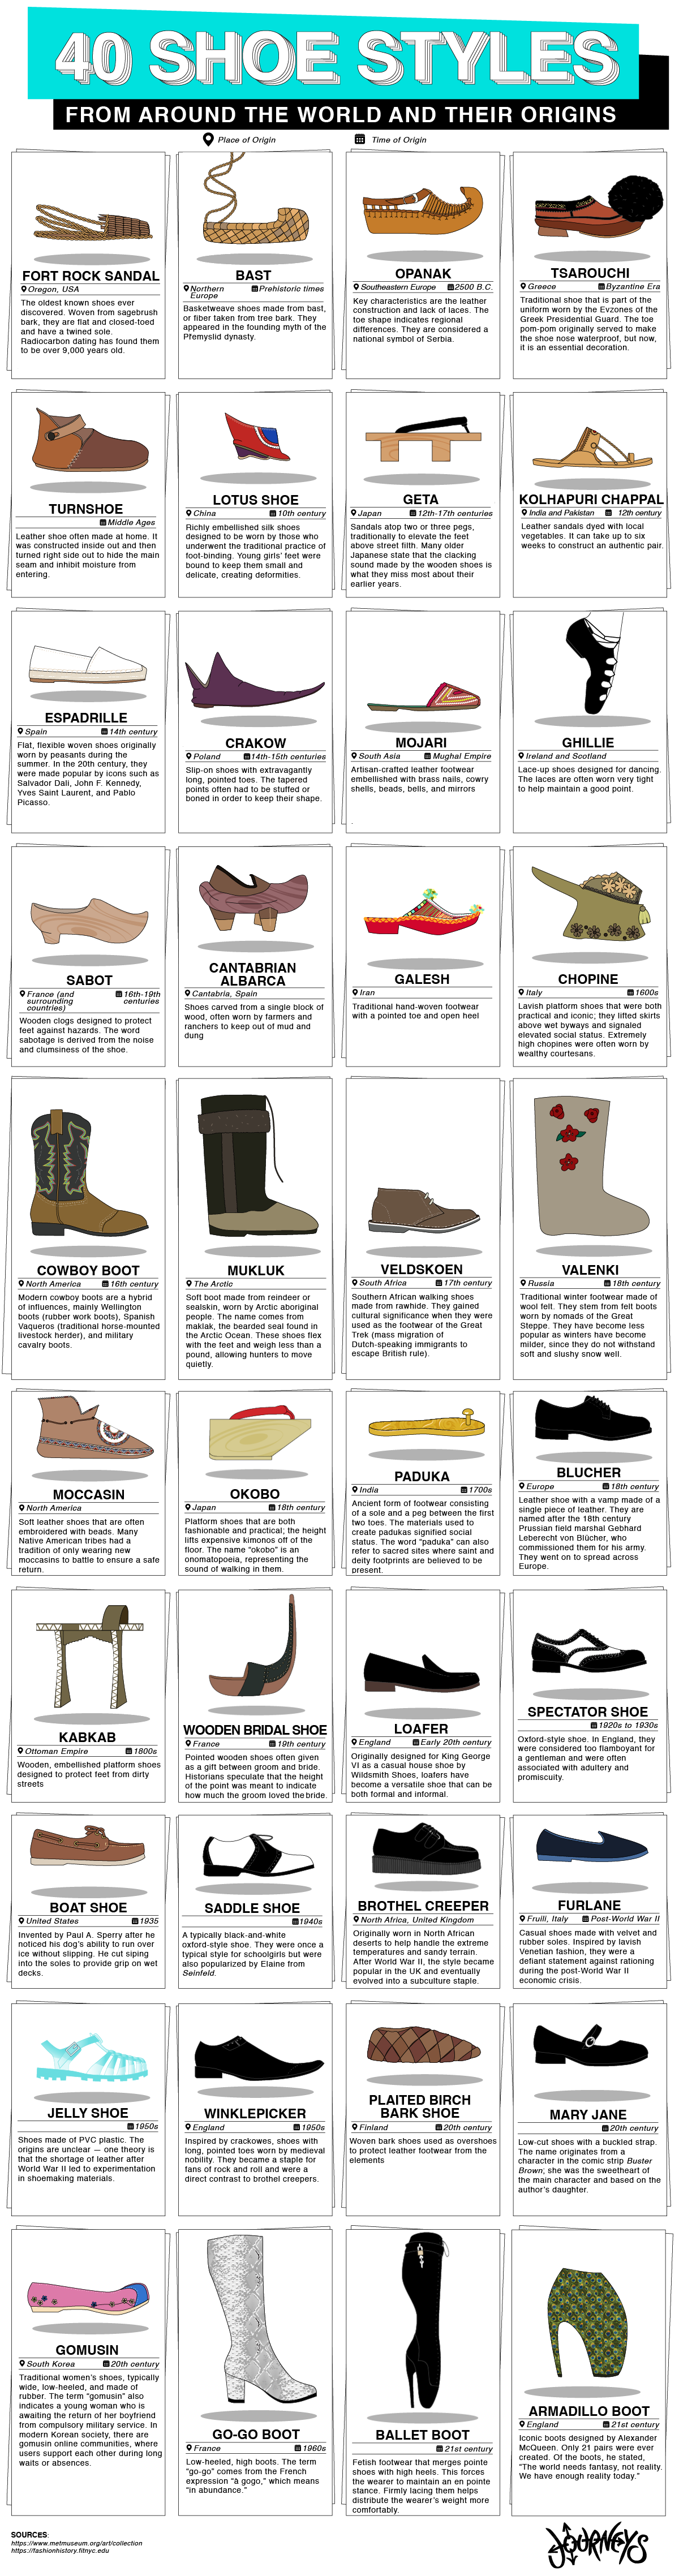 40 Shoe Styles from Around the World and Their Origins